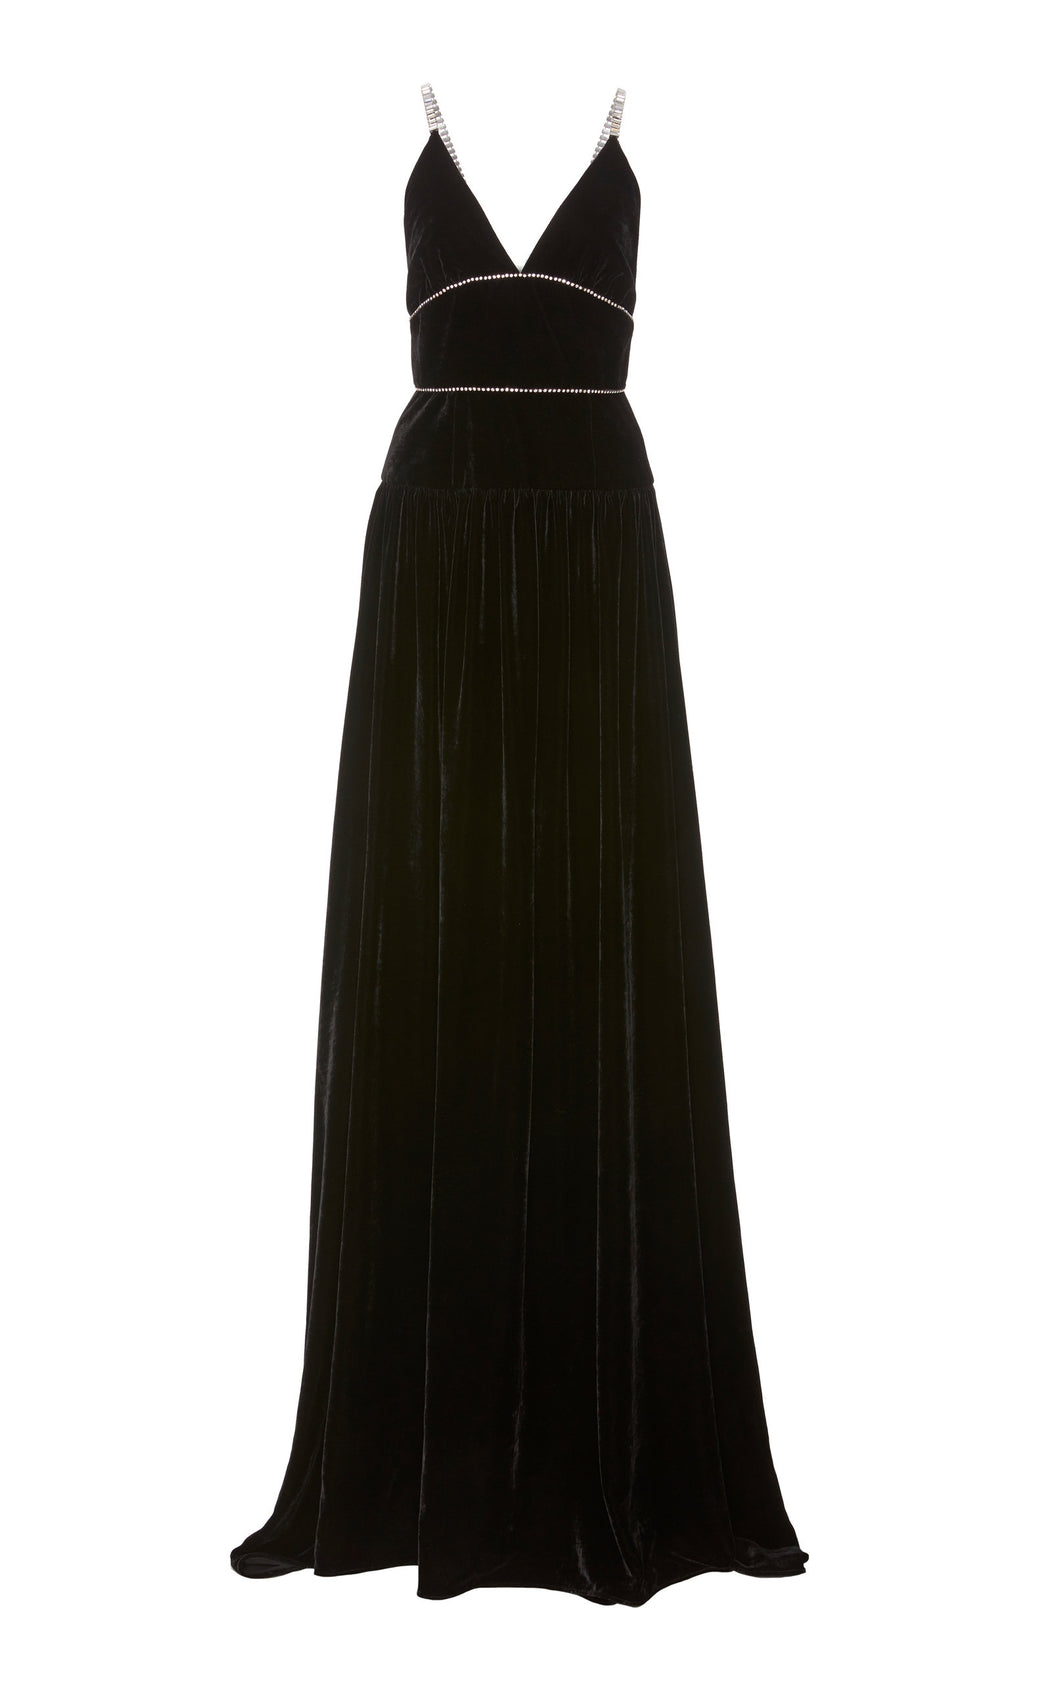 Jasmine Crystal Embellished Black Velvet Gown